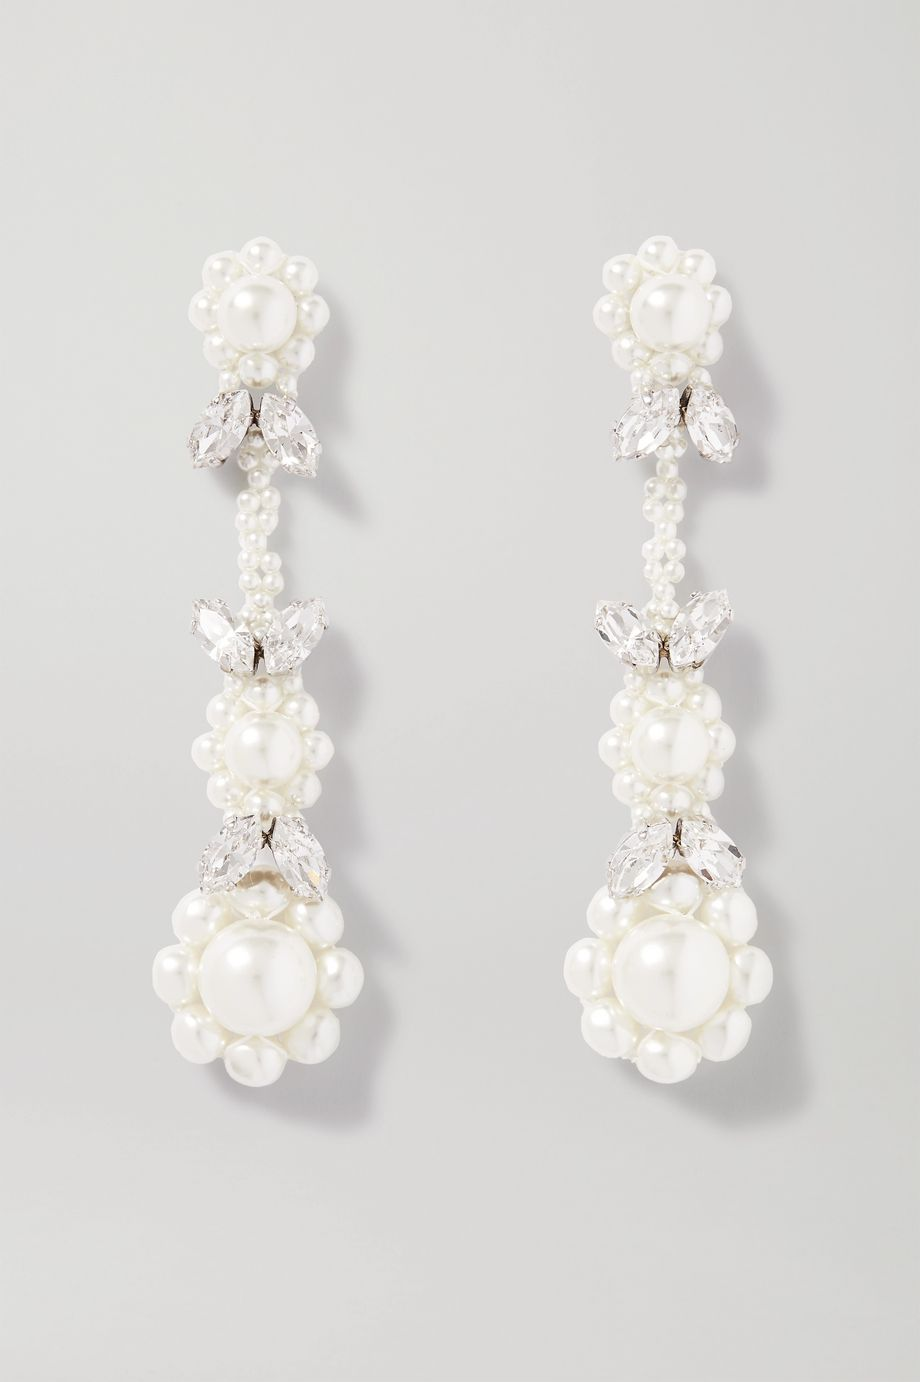 Simone Rocha Victorian silver-tone crystal and faux pearl earrings